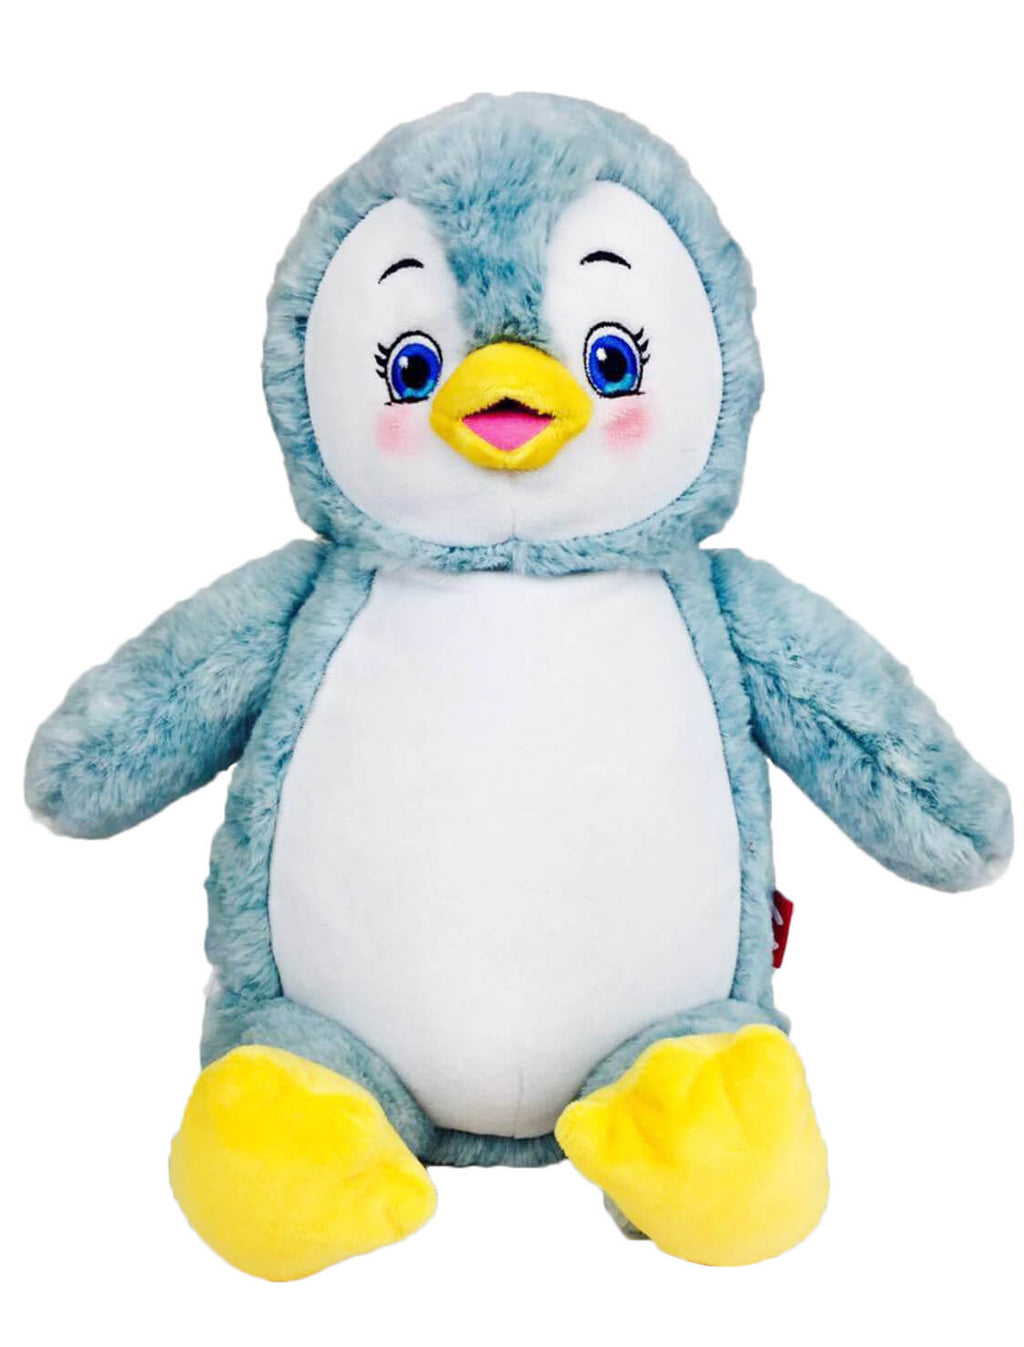 Personalised Teddy - Signature Penguin - D'lighted